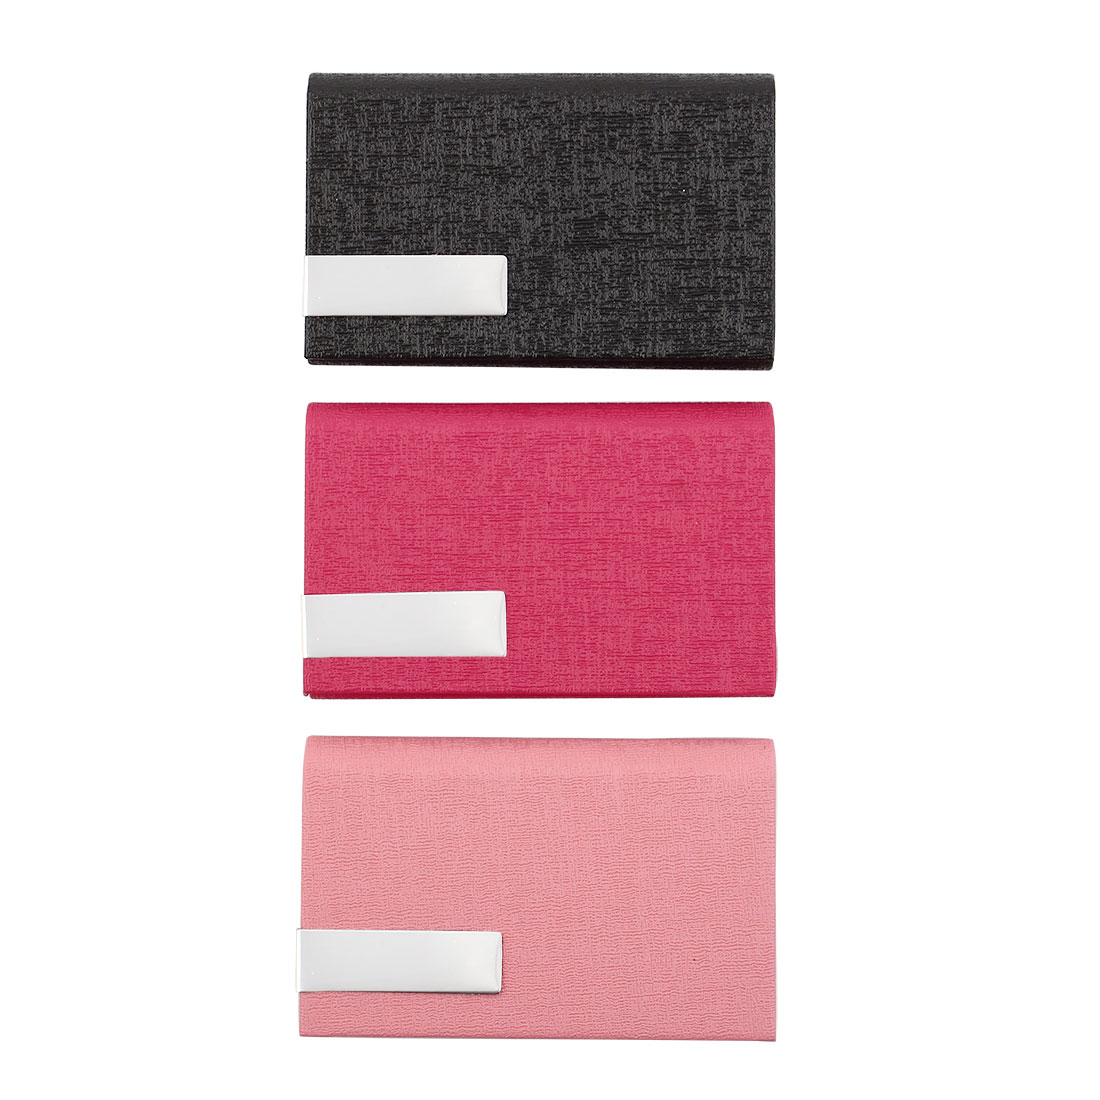 Outdoor Travel Business Name ID Card Case Holder Storage Box Organizer 3 Pack